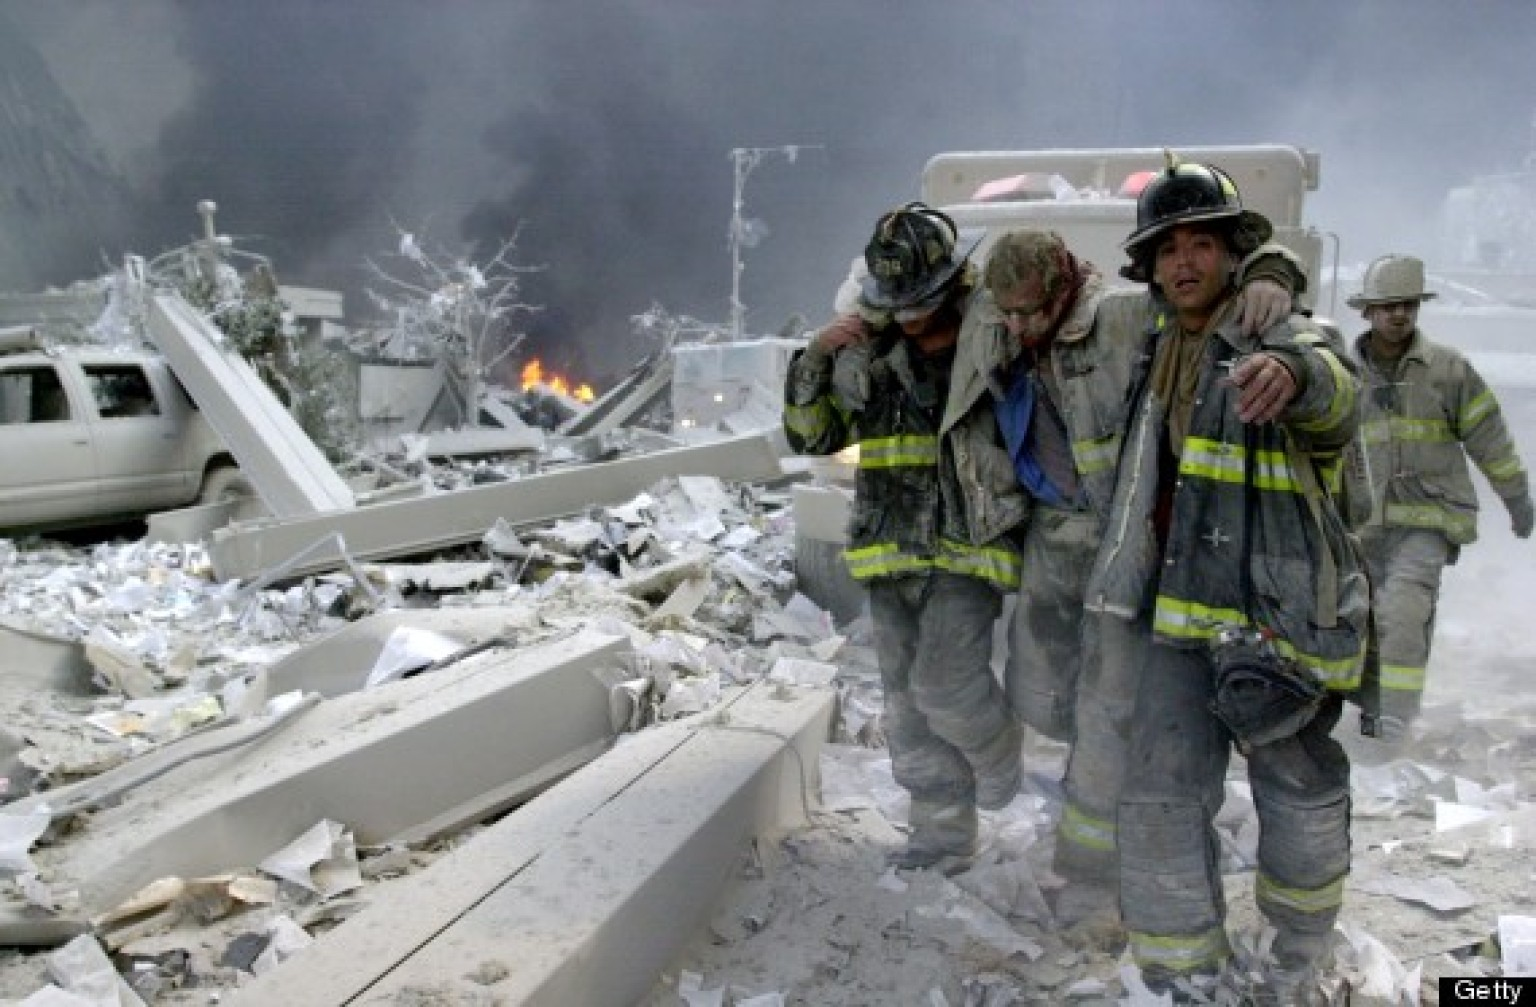 We remember the hundreds of selfless first responders who lost their lives and countless more that risked their own health and safety to find and save our fellow citizens.